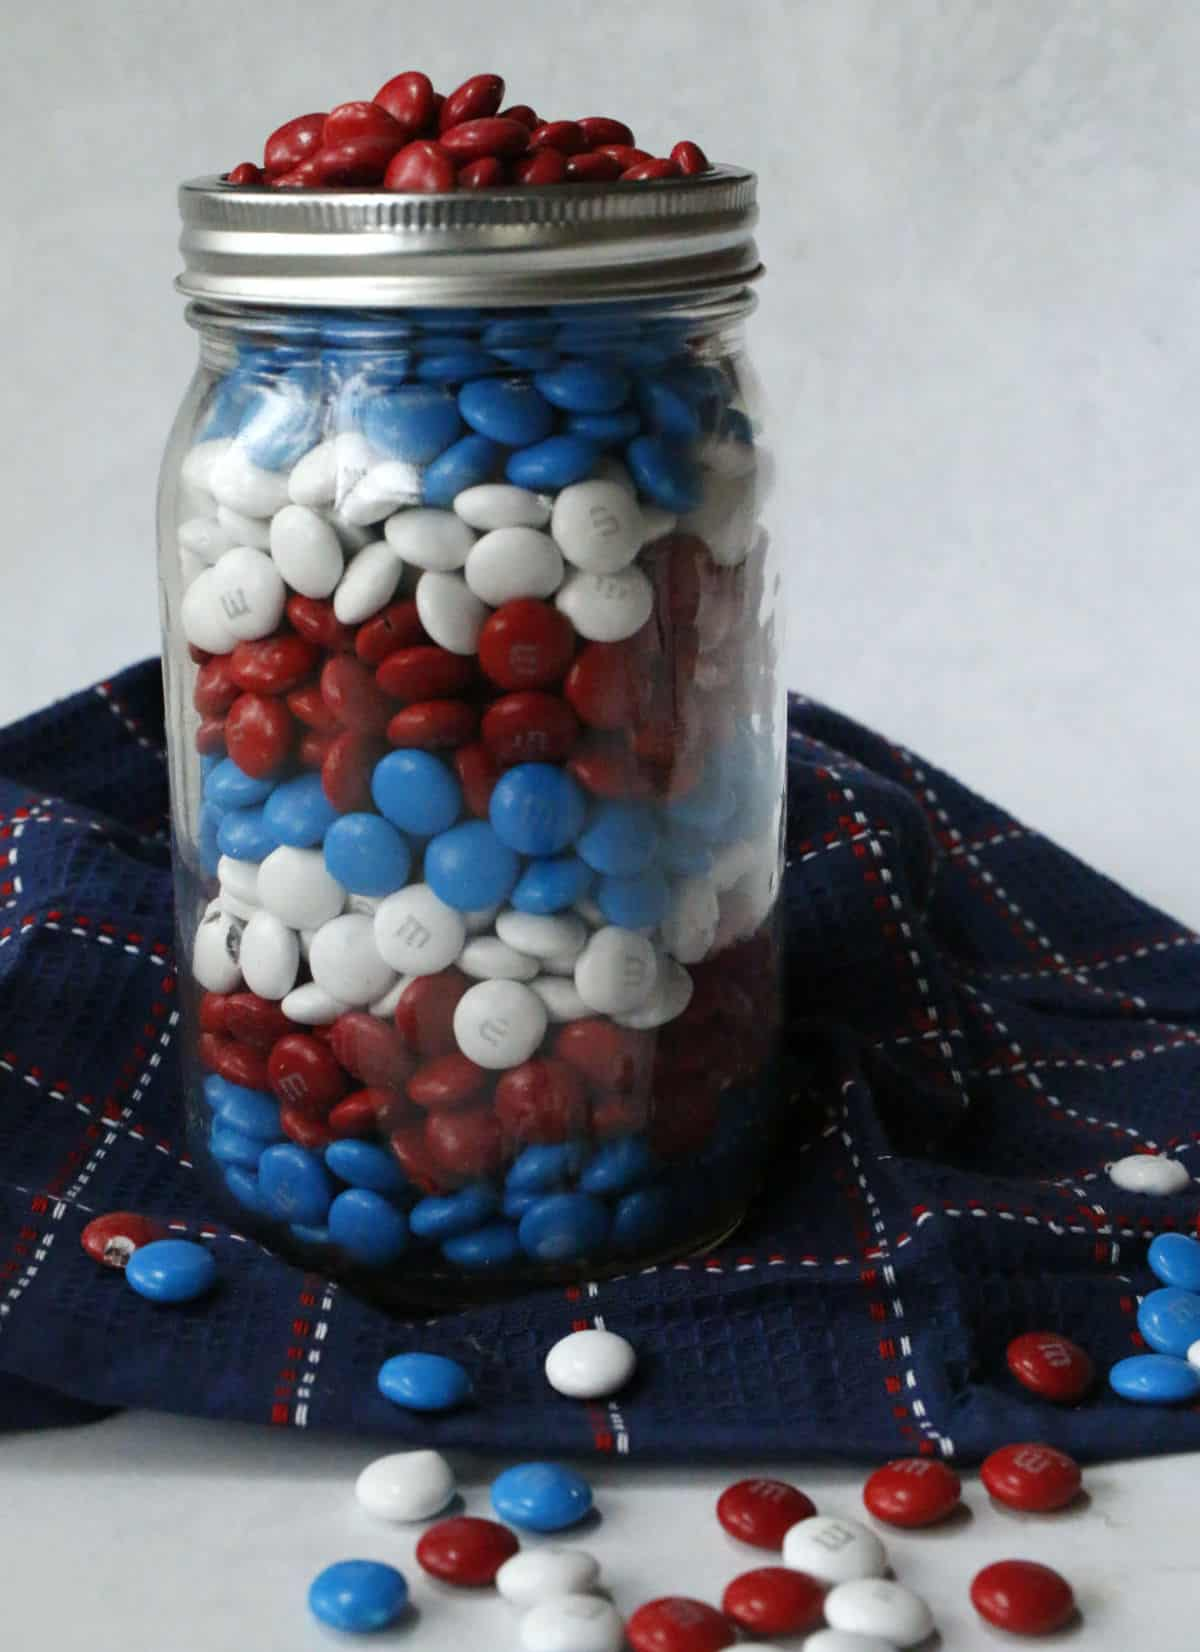 A mason jar of red, white and blue M & Ms.